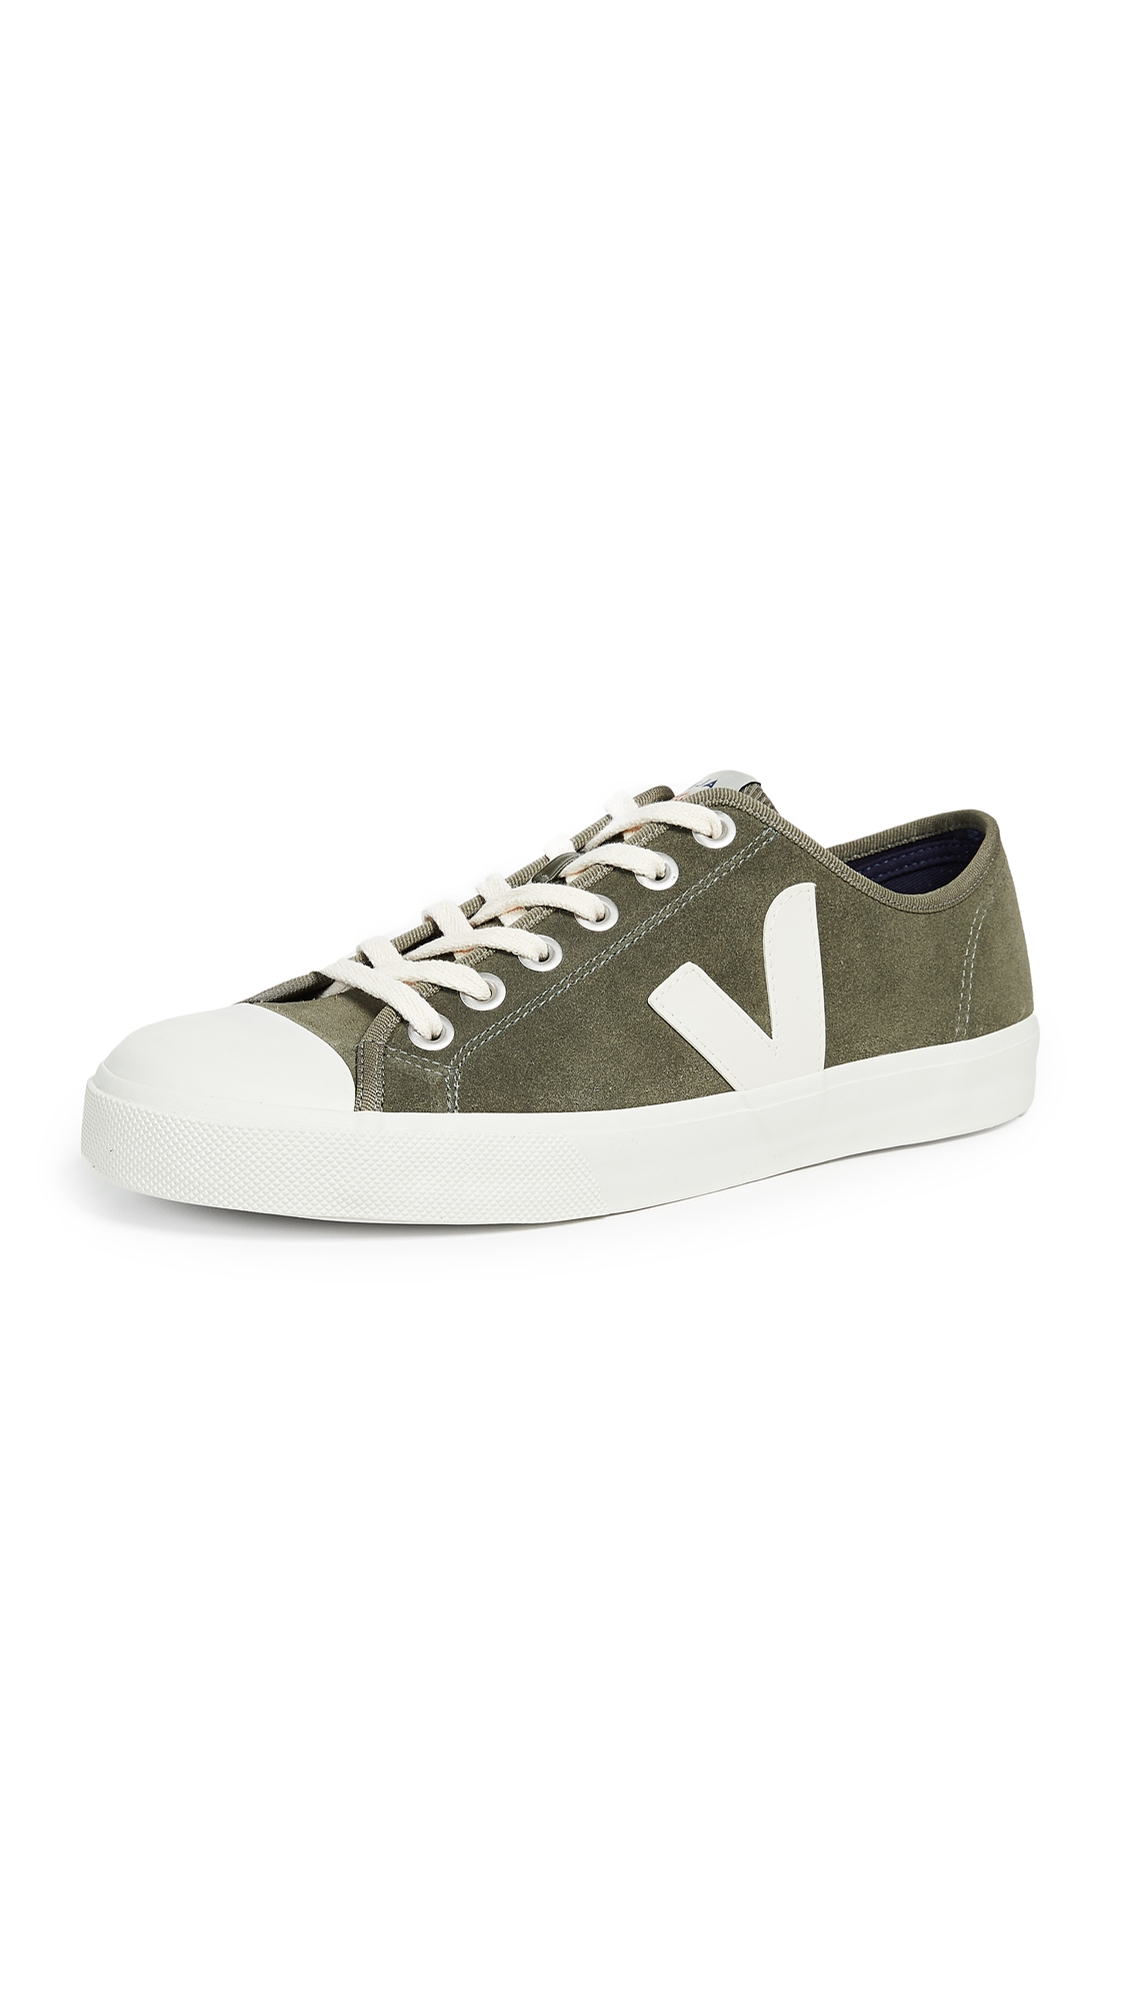 VEJA Wata Rubber-Trimmed Suede Sneakers - Army Green